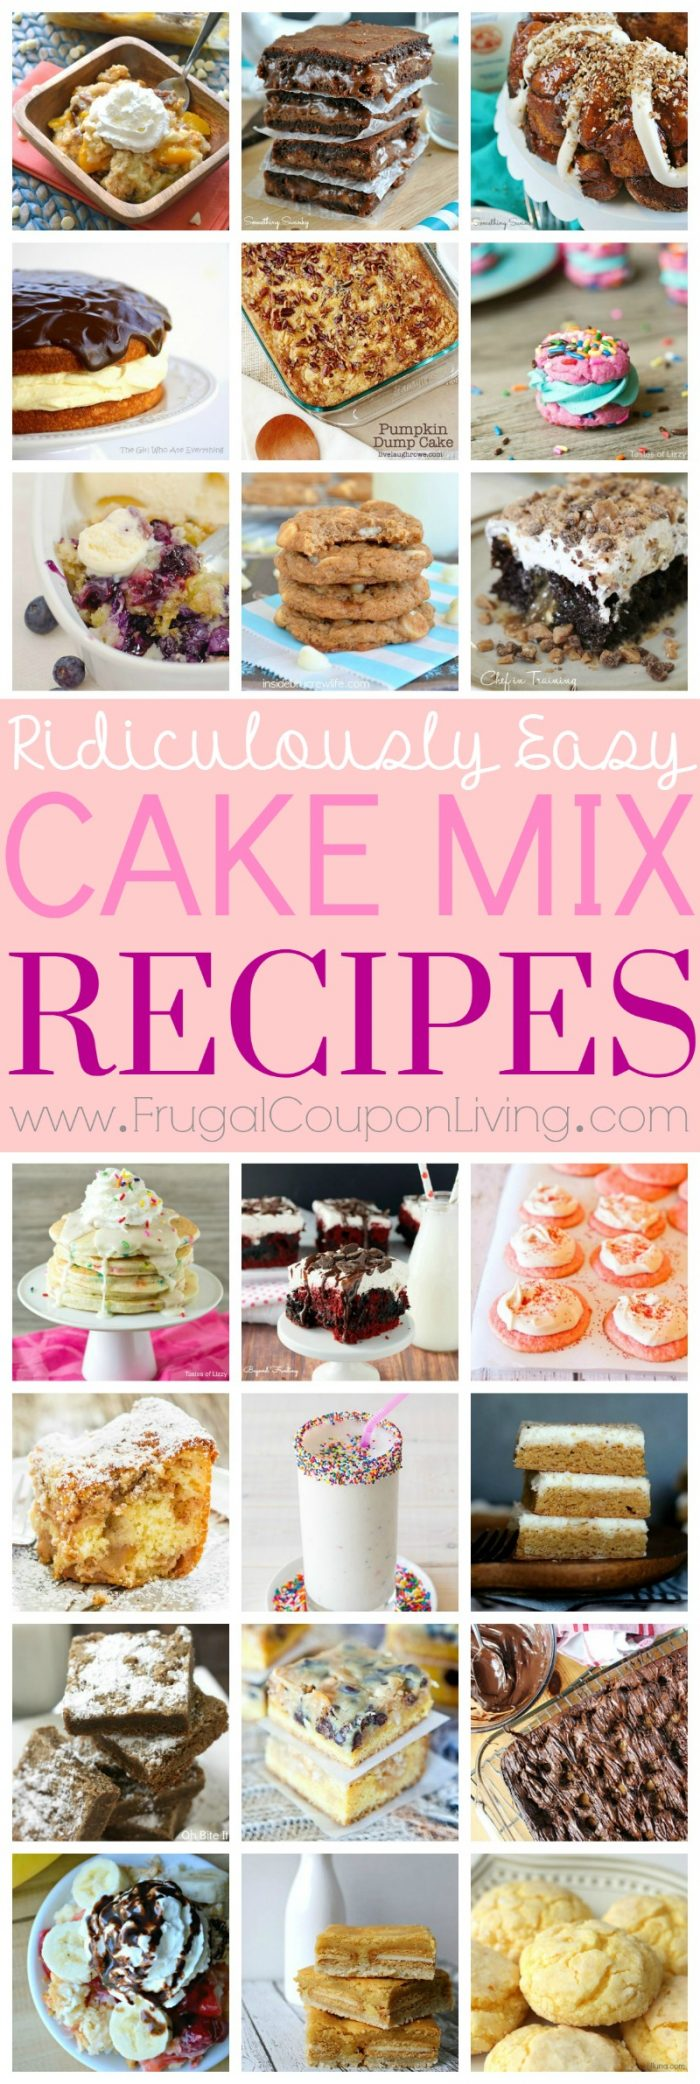 cake-mix-recipes-Collage-frugal-coupon-living